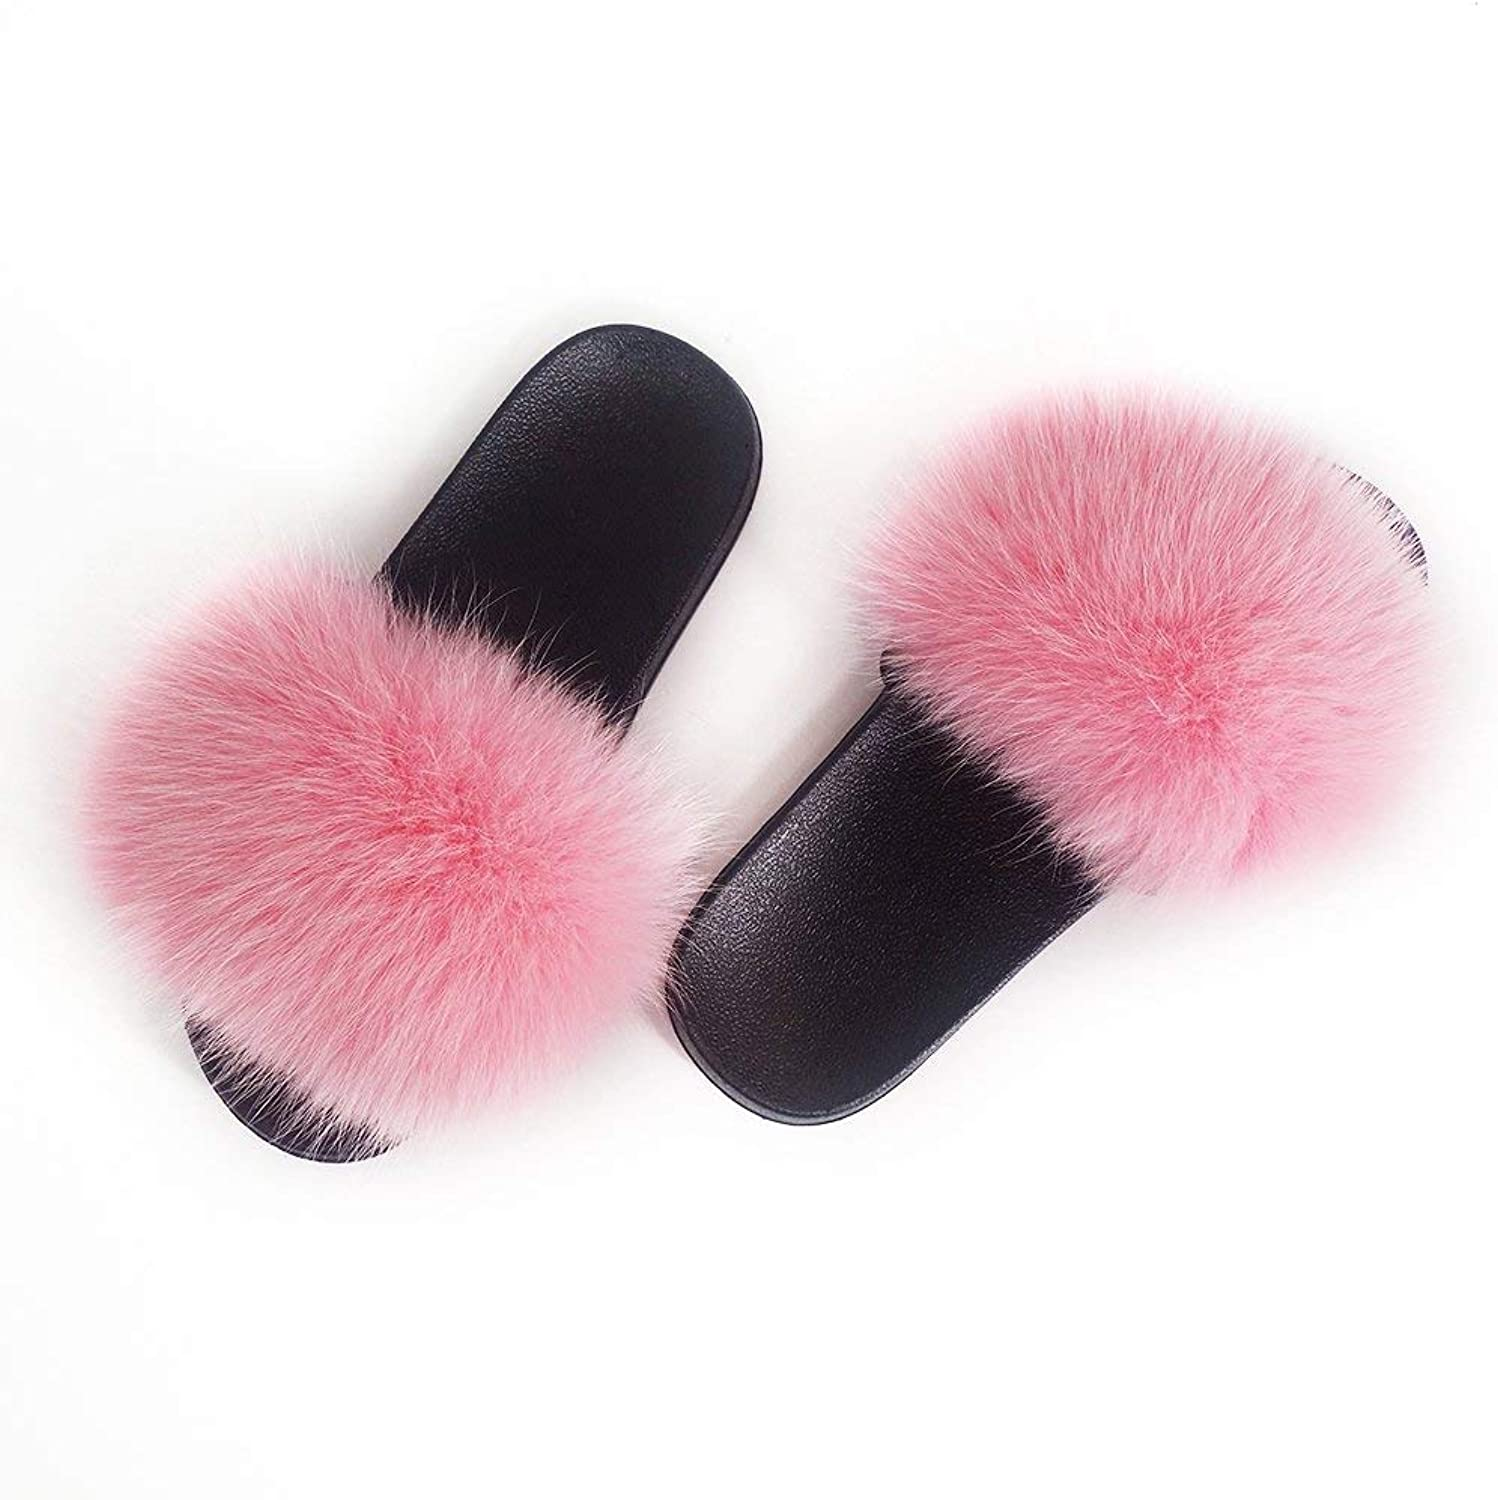 Manka Vesa Women Winter Real Fox Fur Feather Vegan Leather Open Toe Single Strap Slip On Sandals